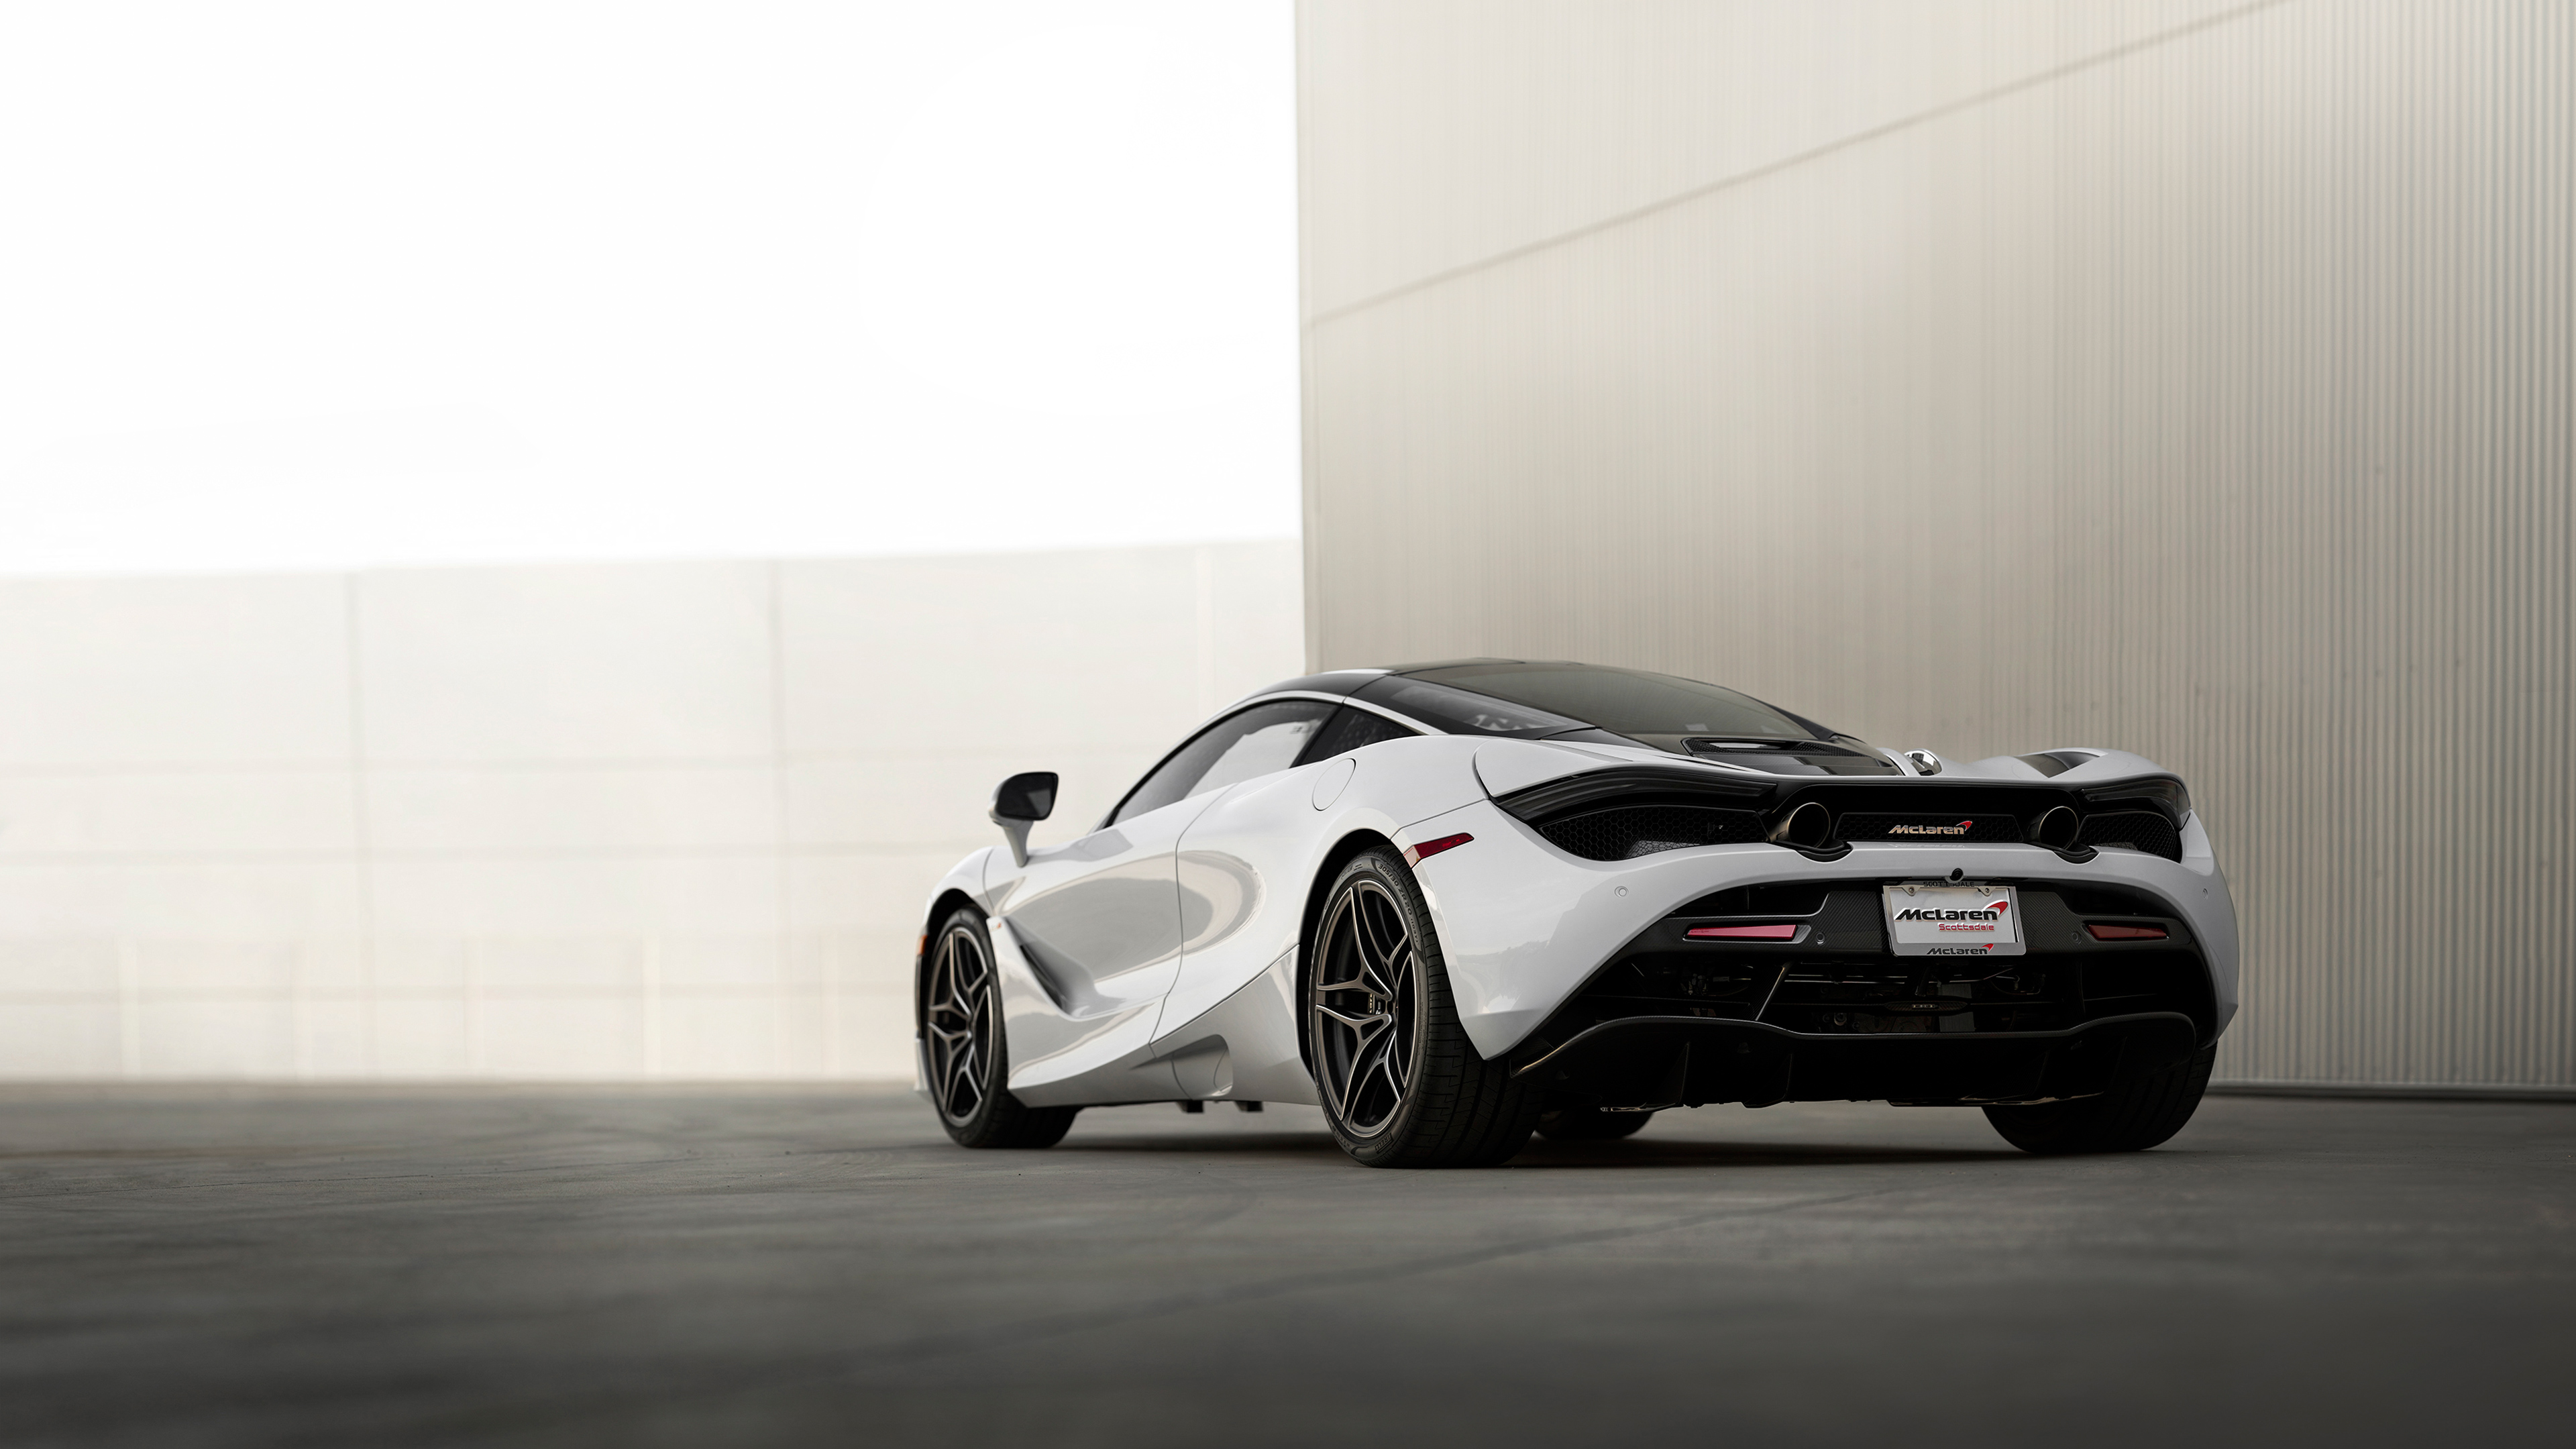 mclaren 720s rear view wallpaper 66200